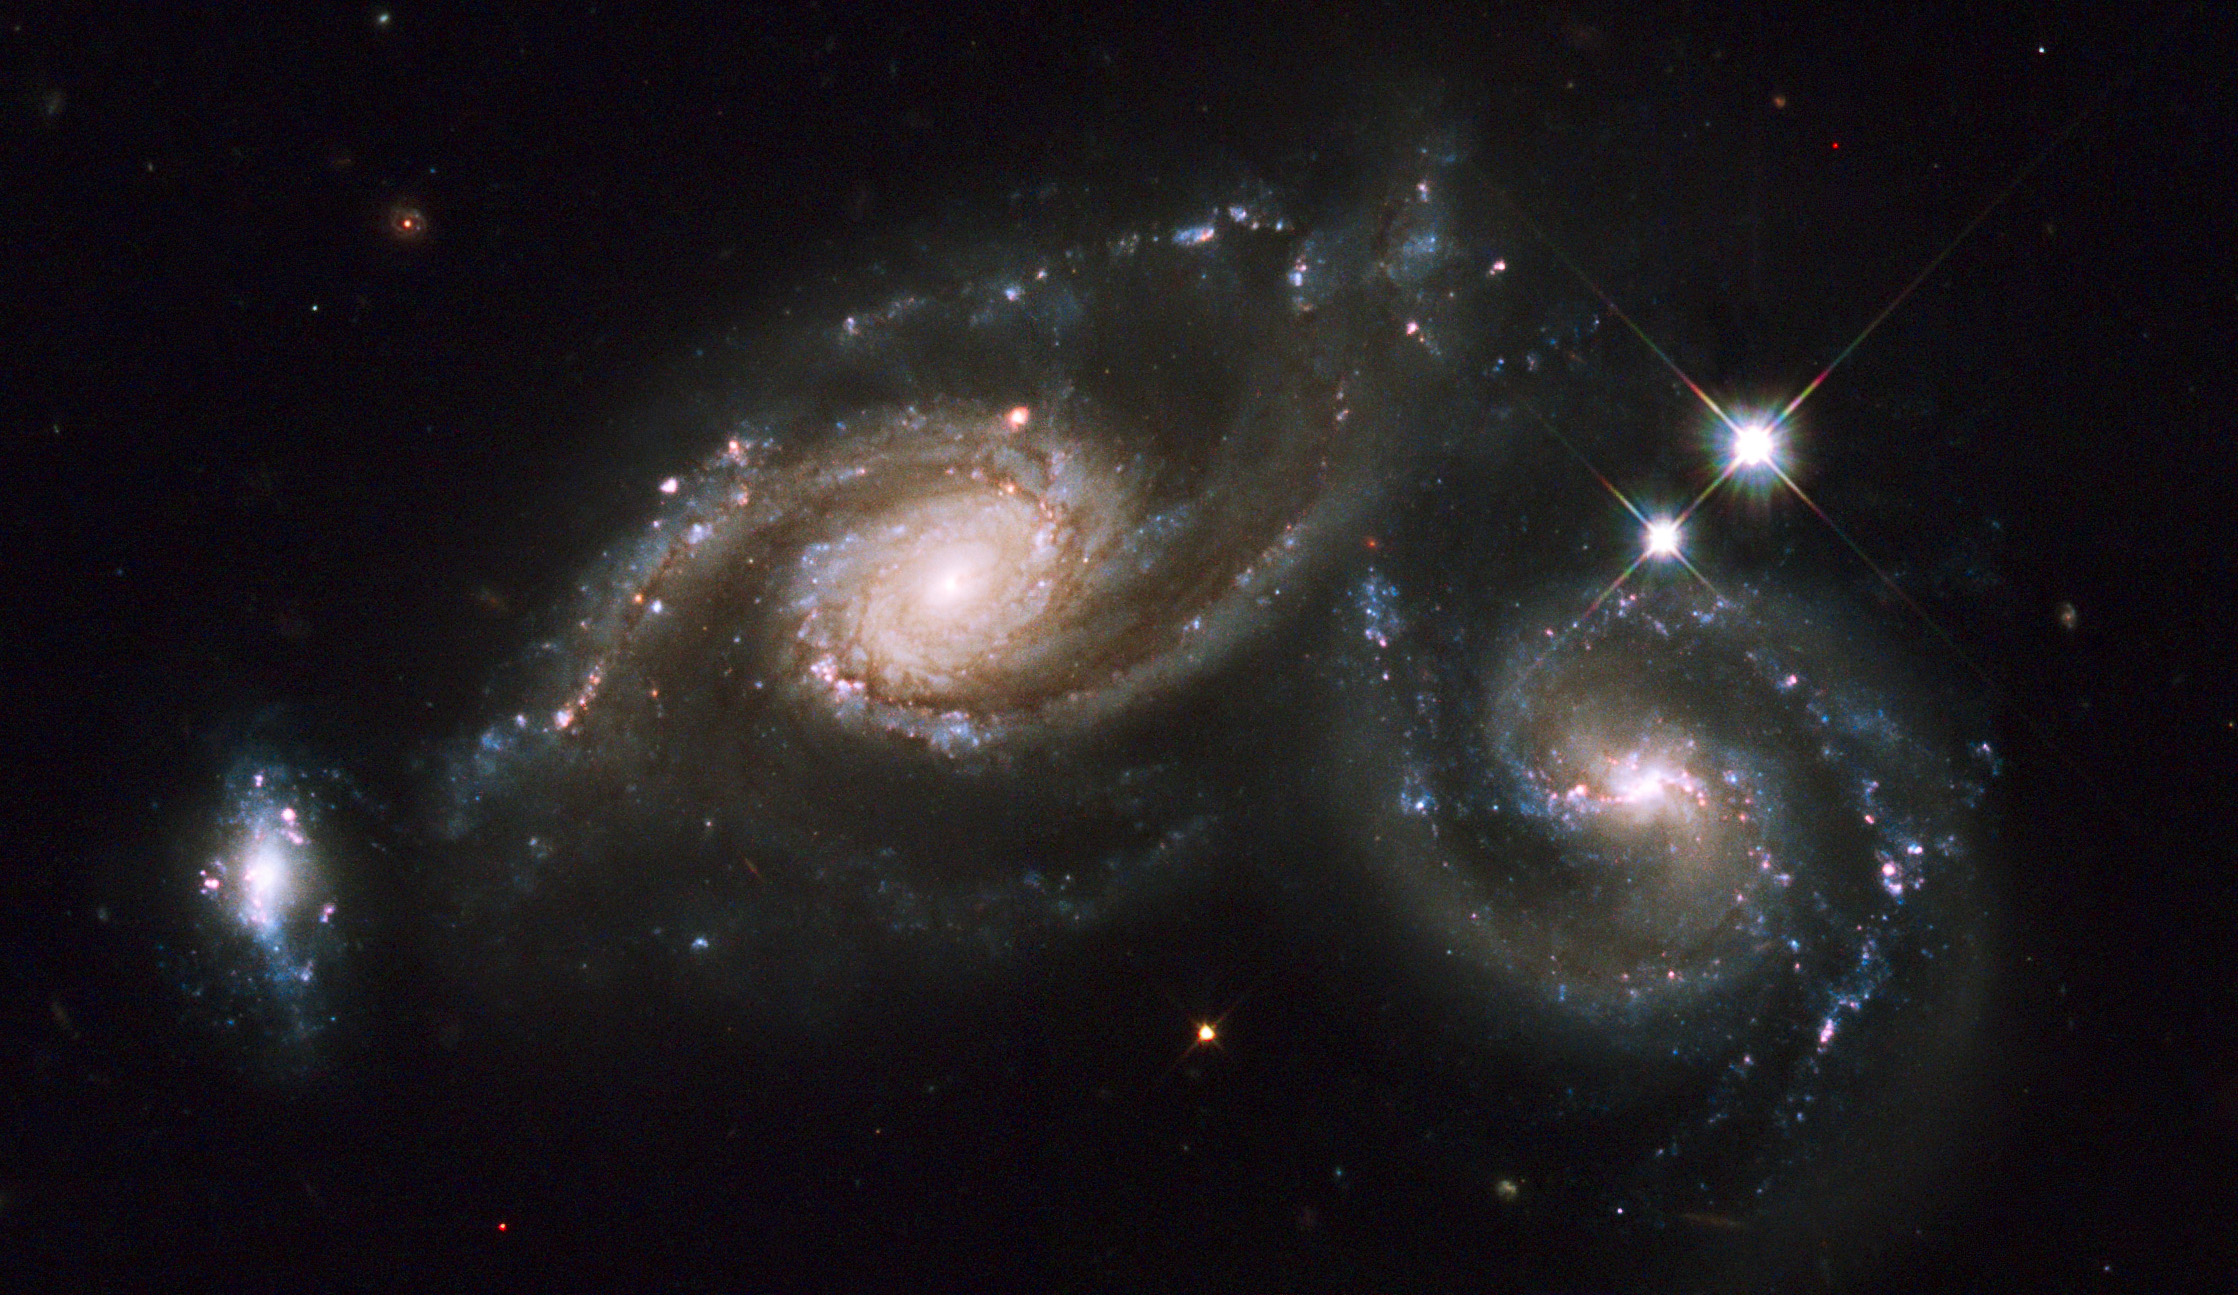 APOD: 2009 April 7 – The Colliding Spiral Galaxies of Arp 274